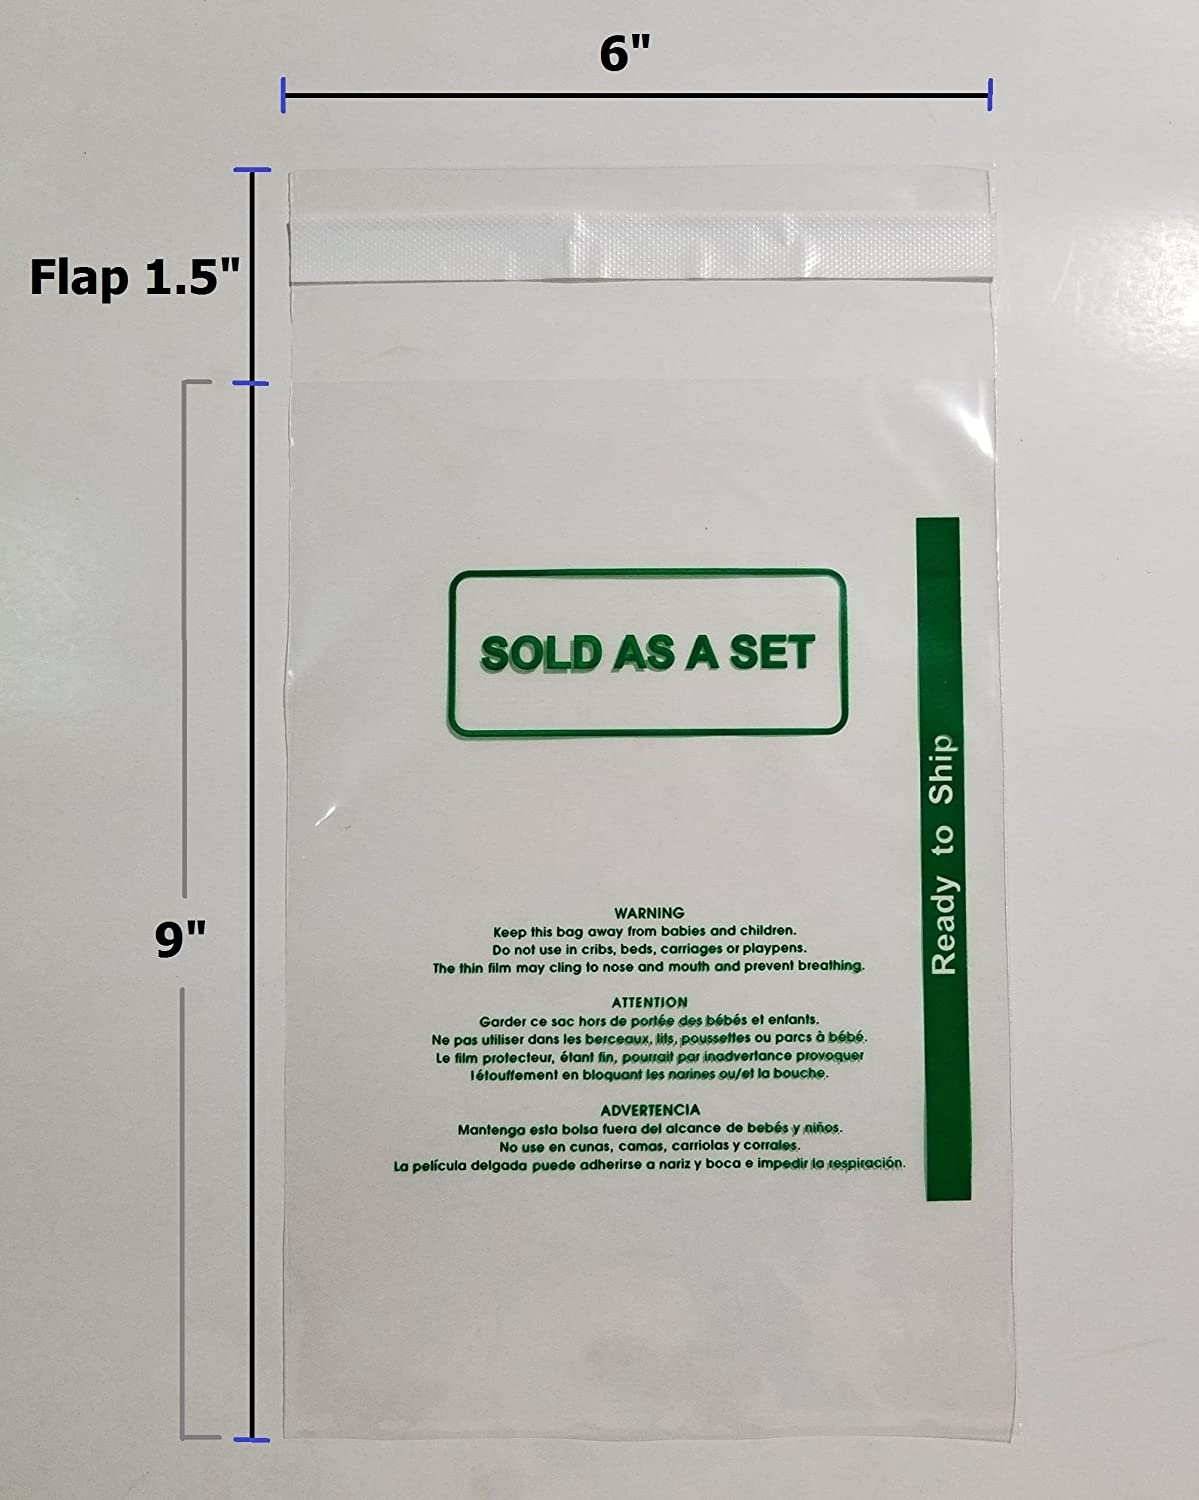 Permanent Self Seal Clear Poly Bags 1.6 mil Self-Seal with Suffocation Warning 1000 Pcs 6x9 PS by UNIQUEPACKING